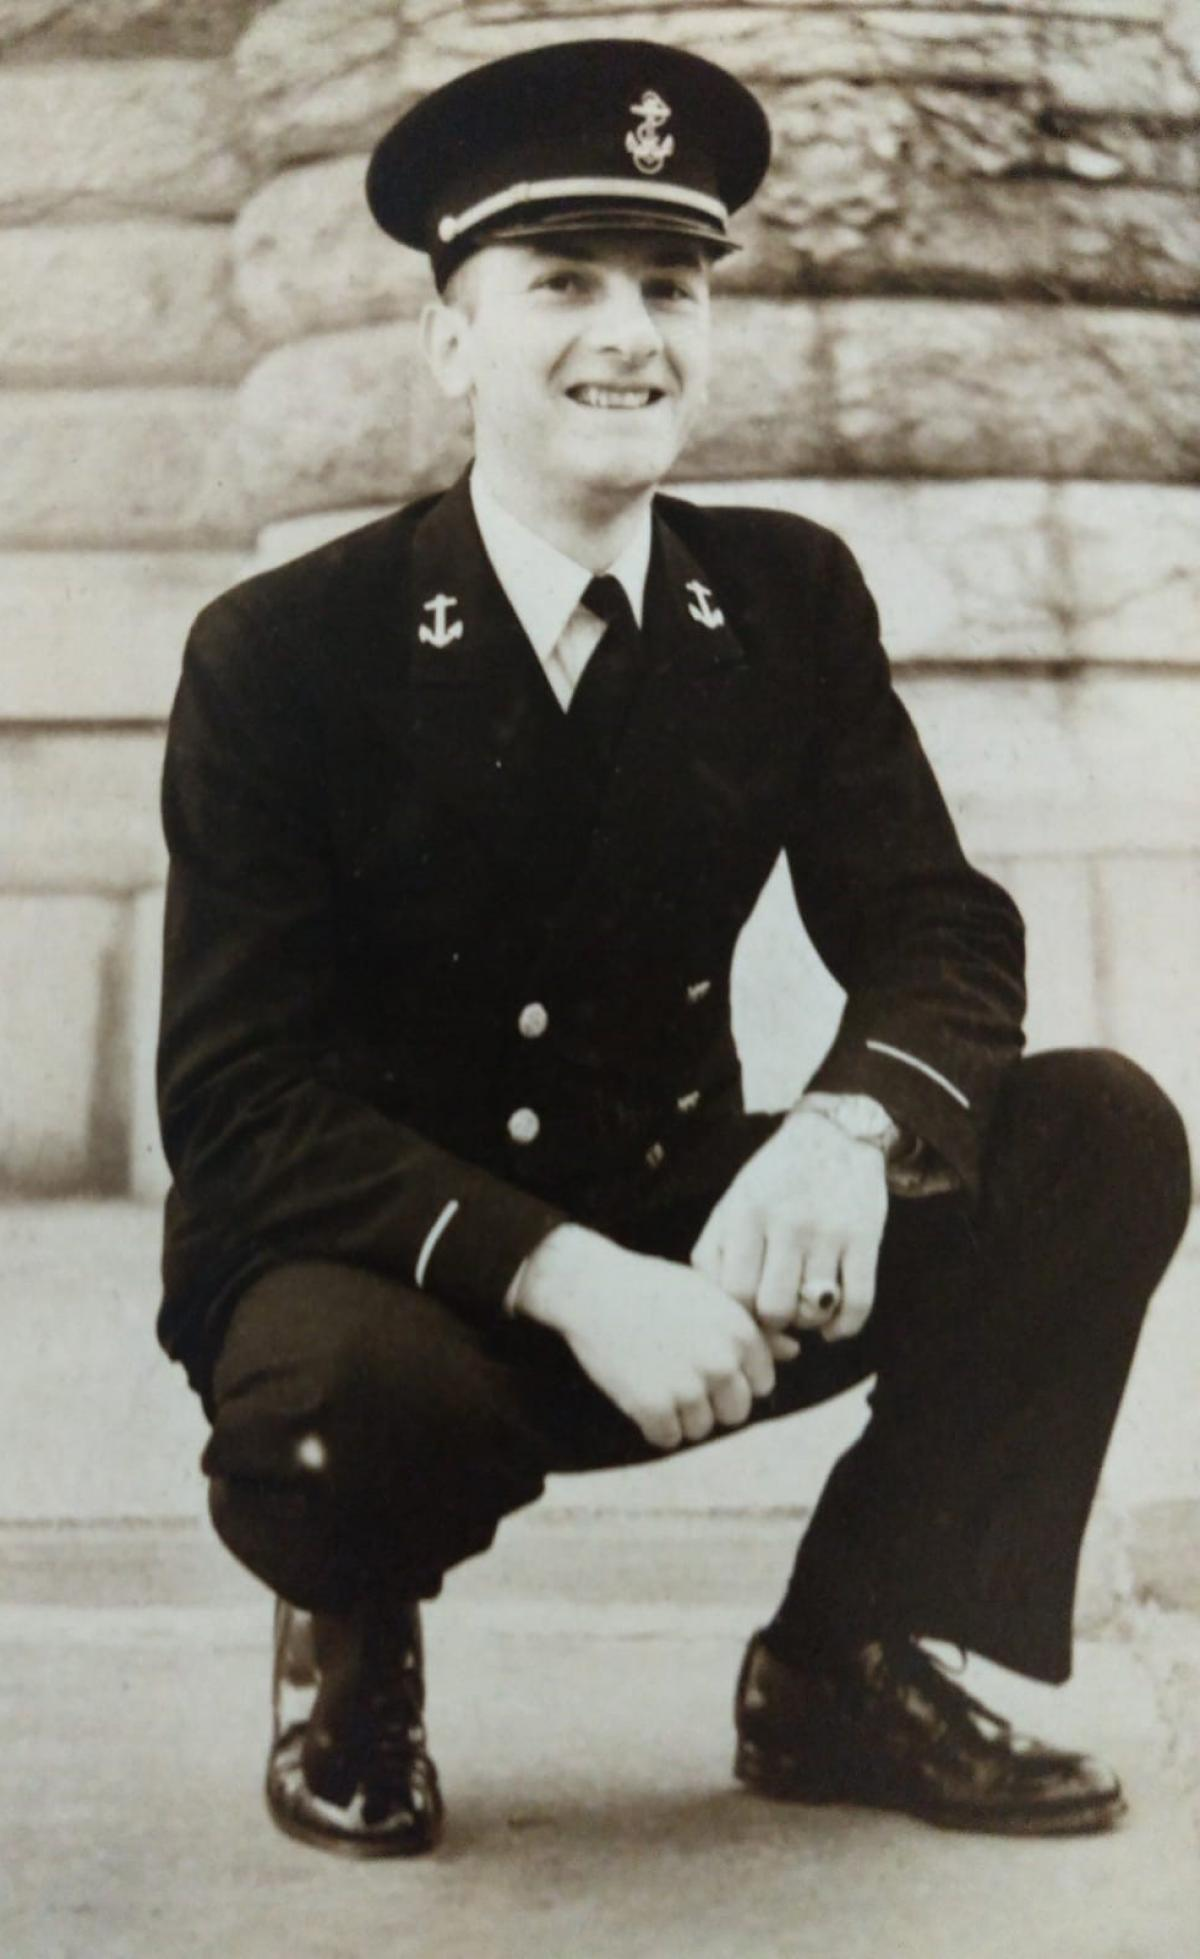 photo of a man in military uniform kneeling